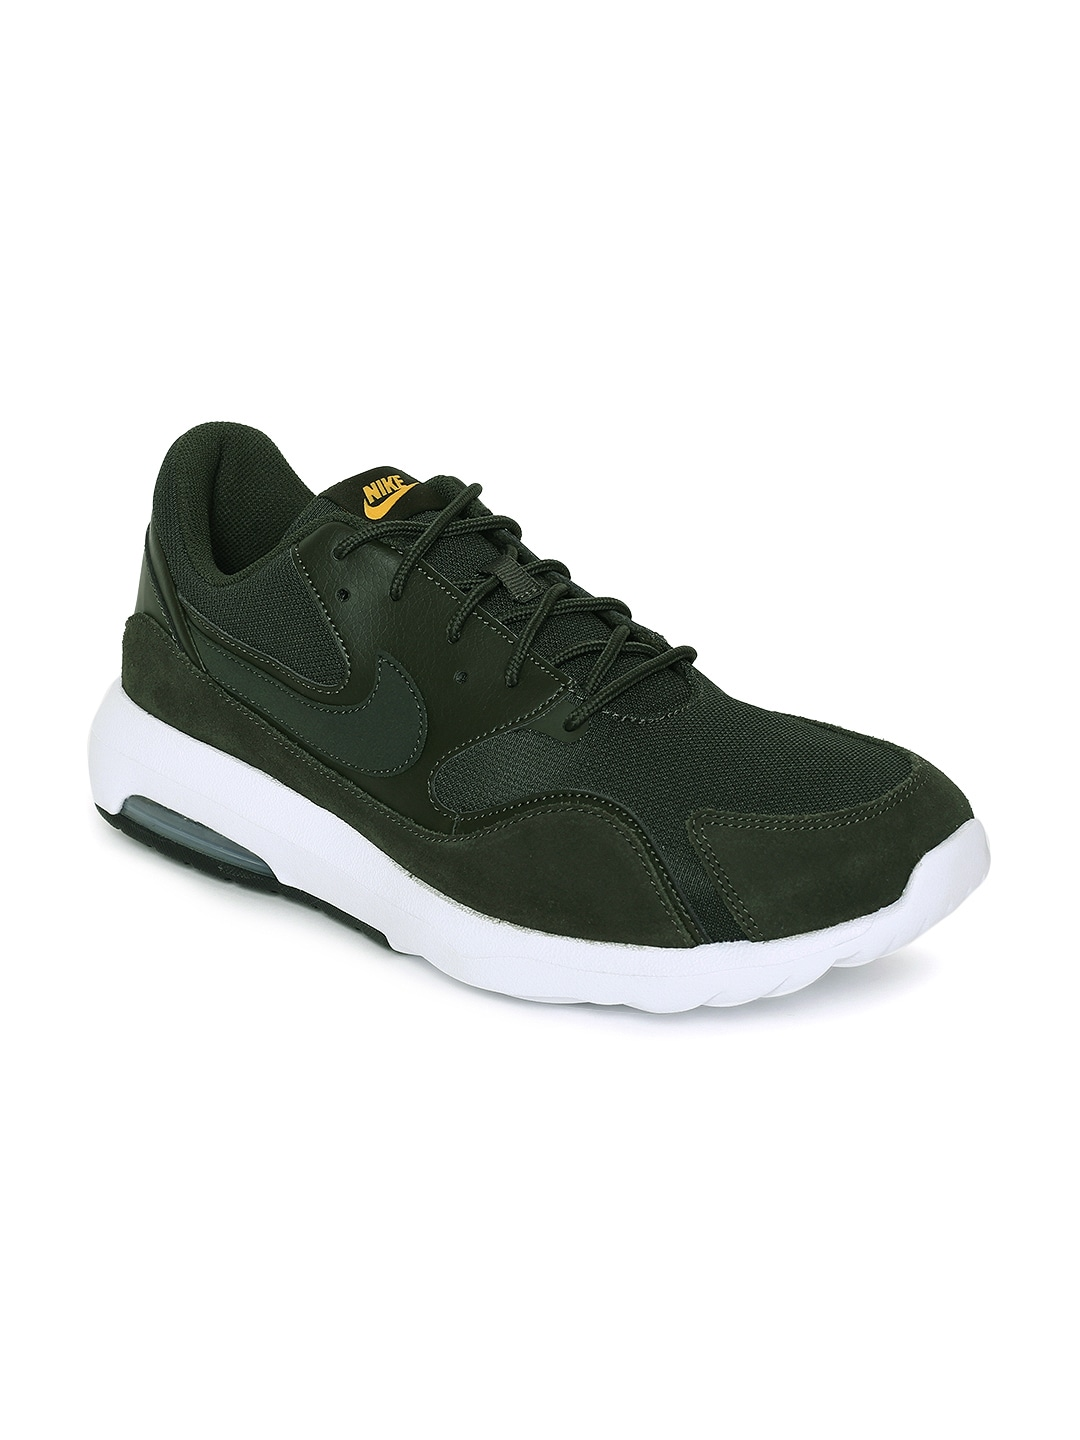 buy online fe826 58a43 Nike Air Max Shoes - Buy Nike Air Max Shoes Online for Men   Women